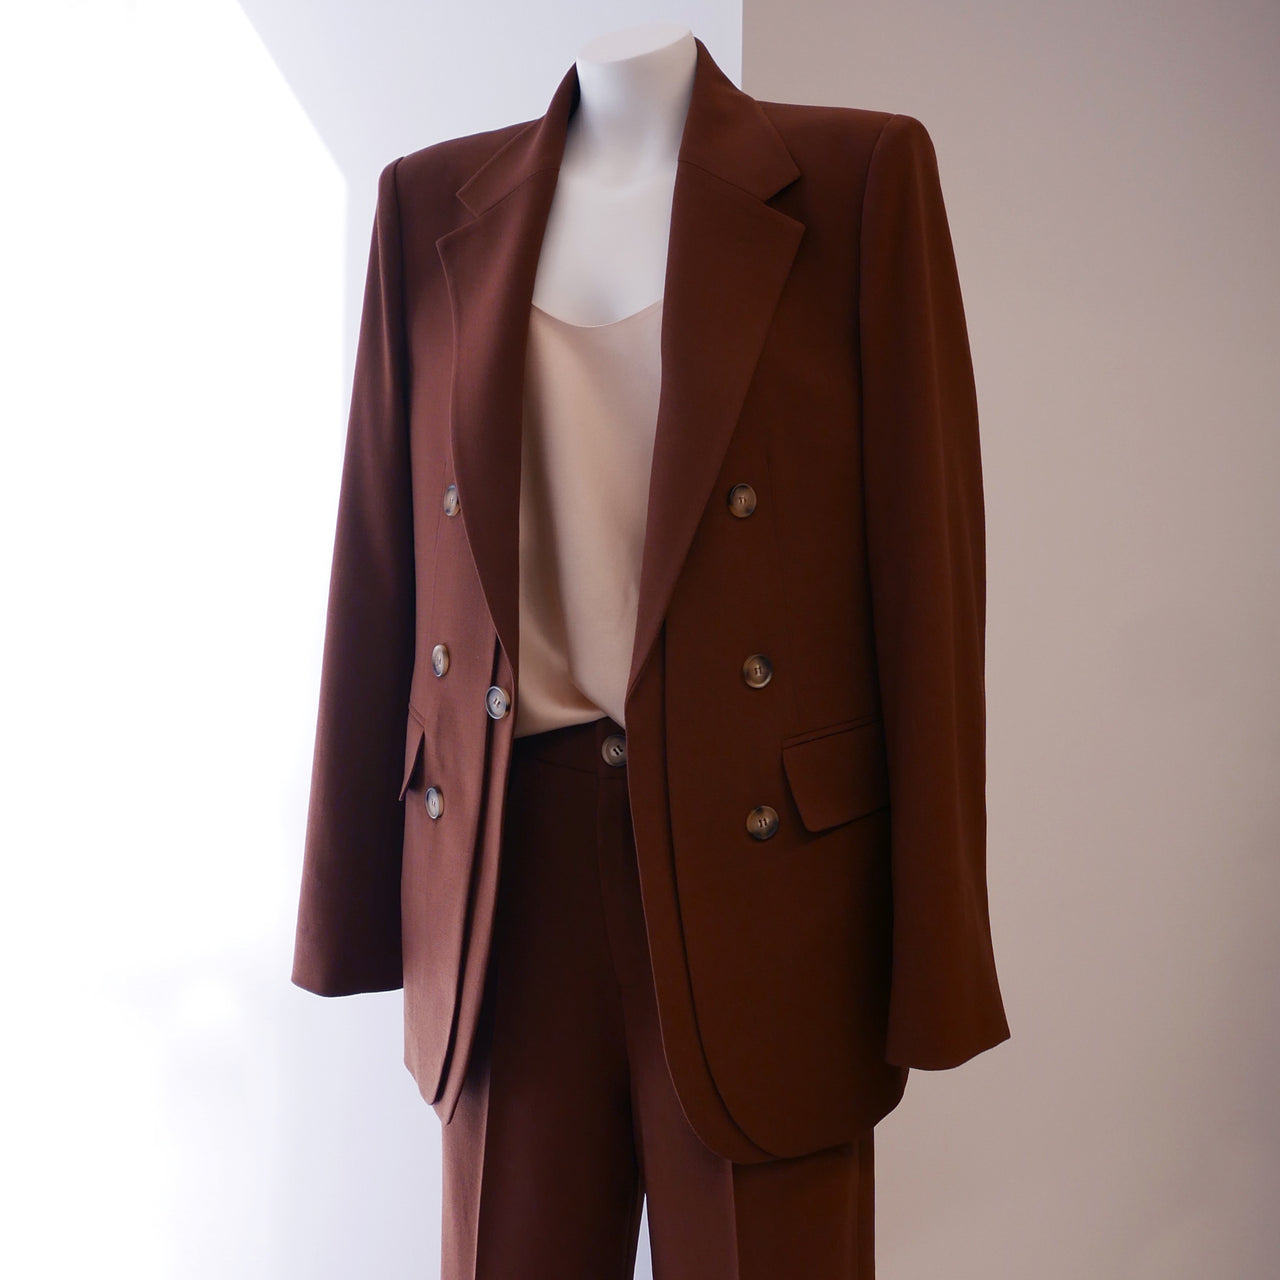 UNISEX Double Breasted Blazer in Brown